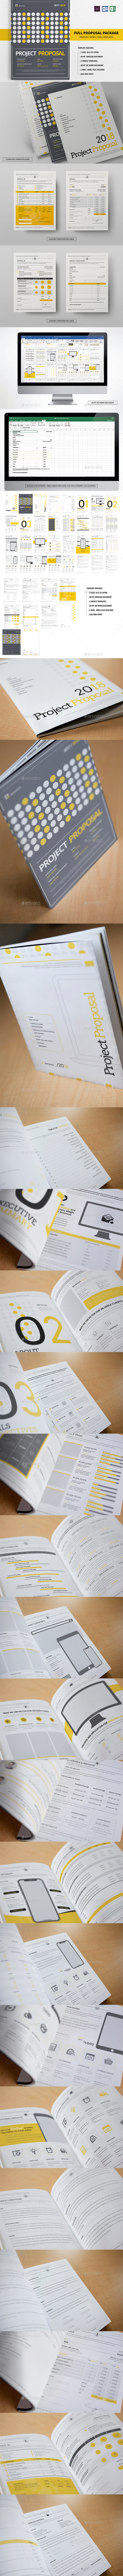 +40 Pages Full Proposal Package A4 / US Letter - Proposals & Invoices Stationery